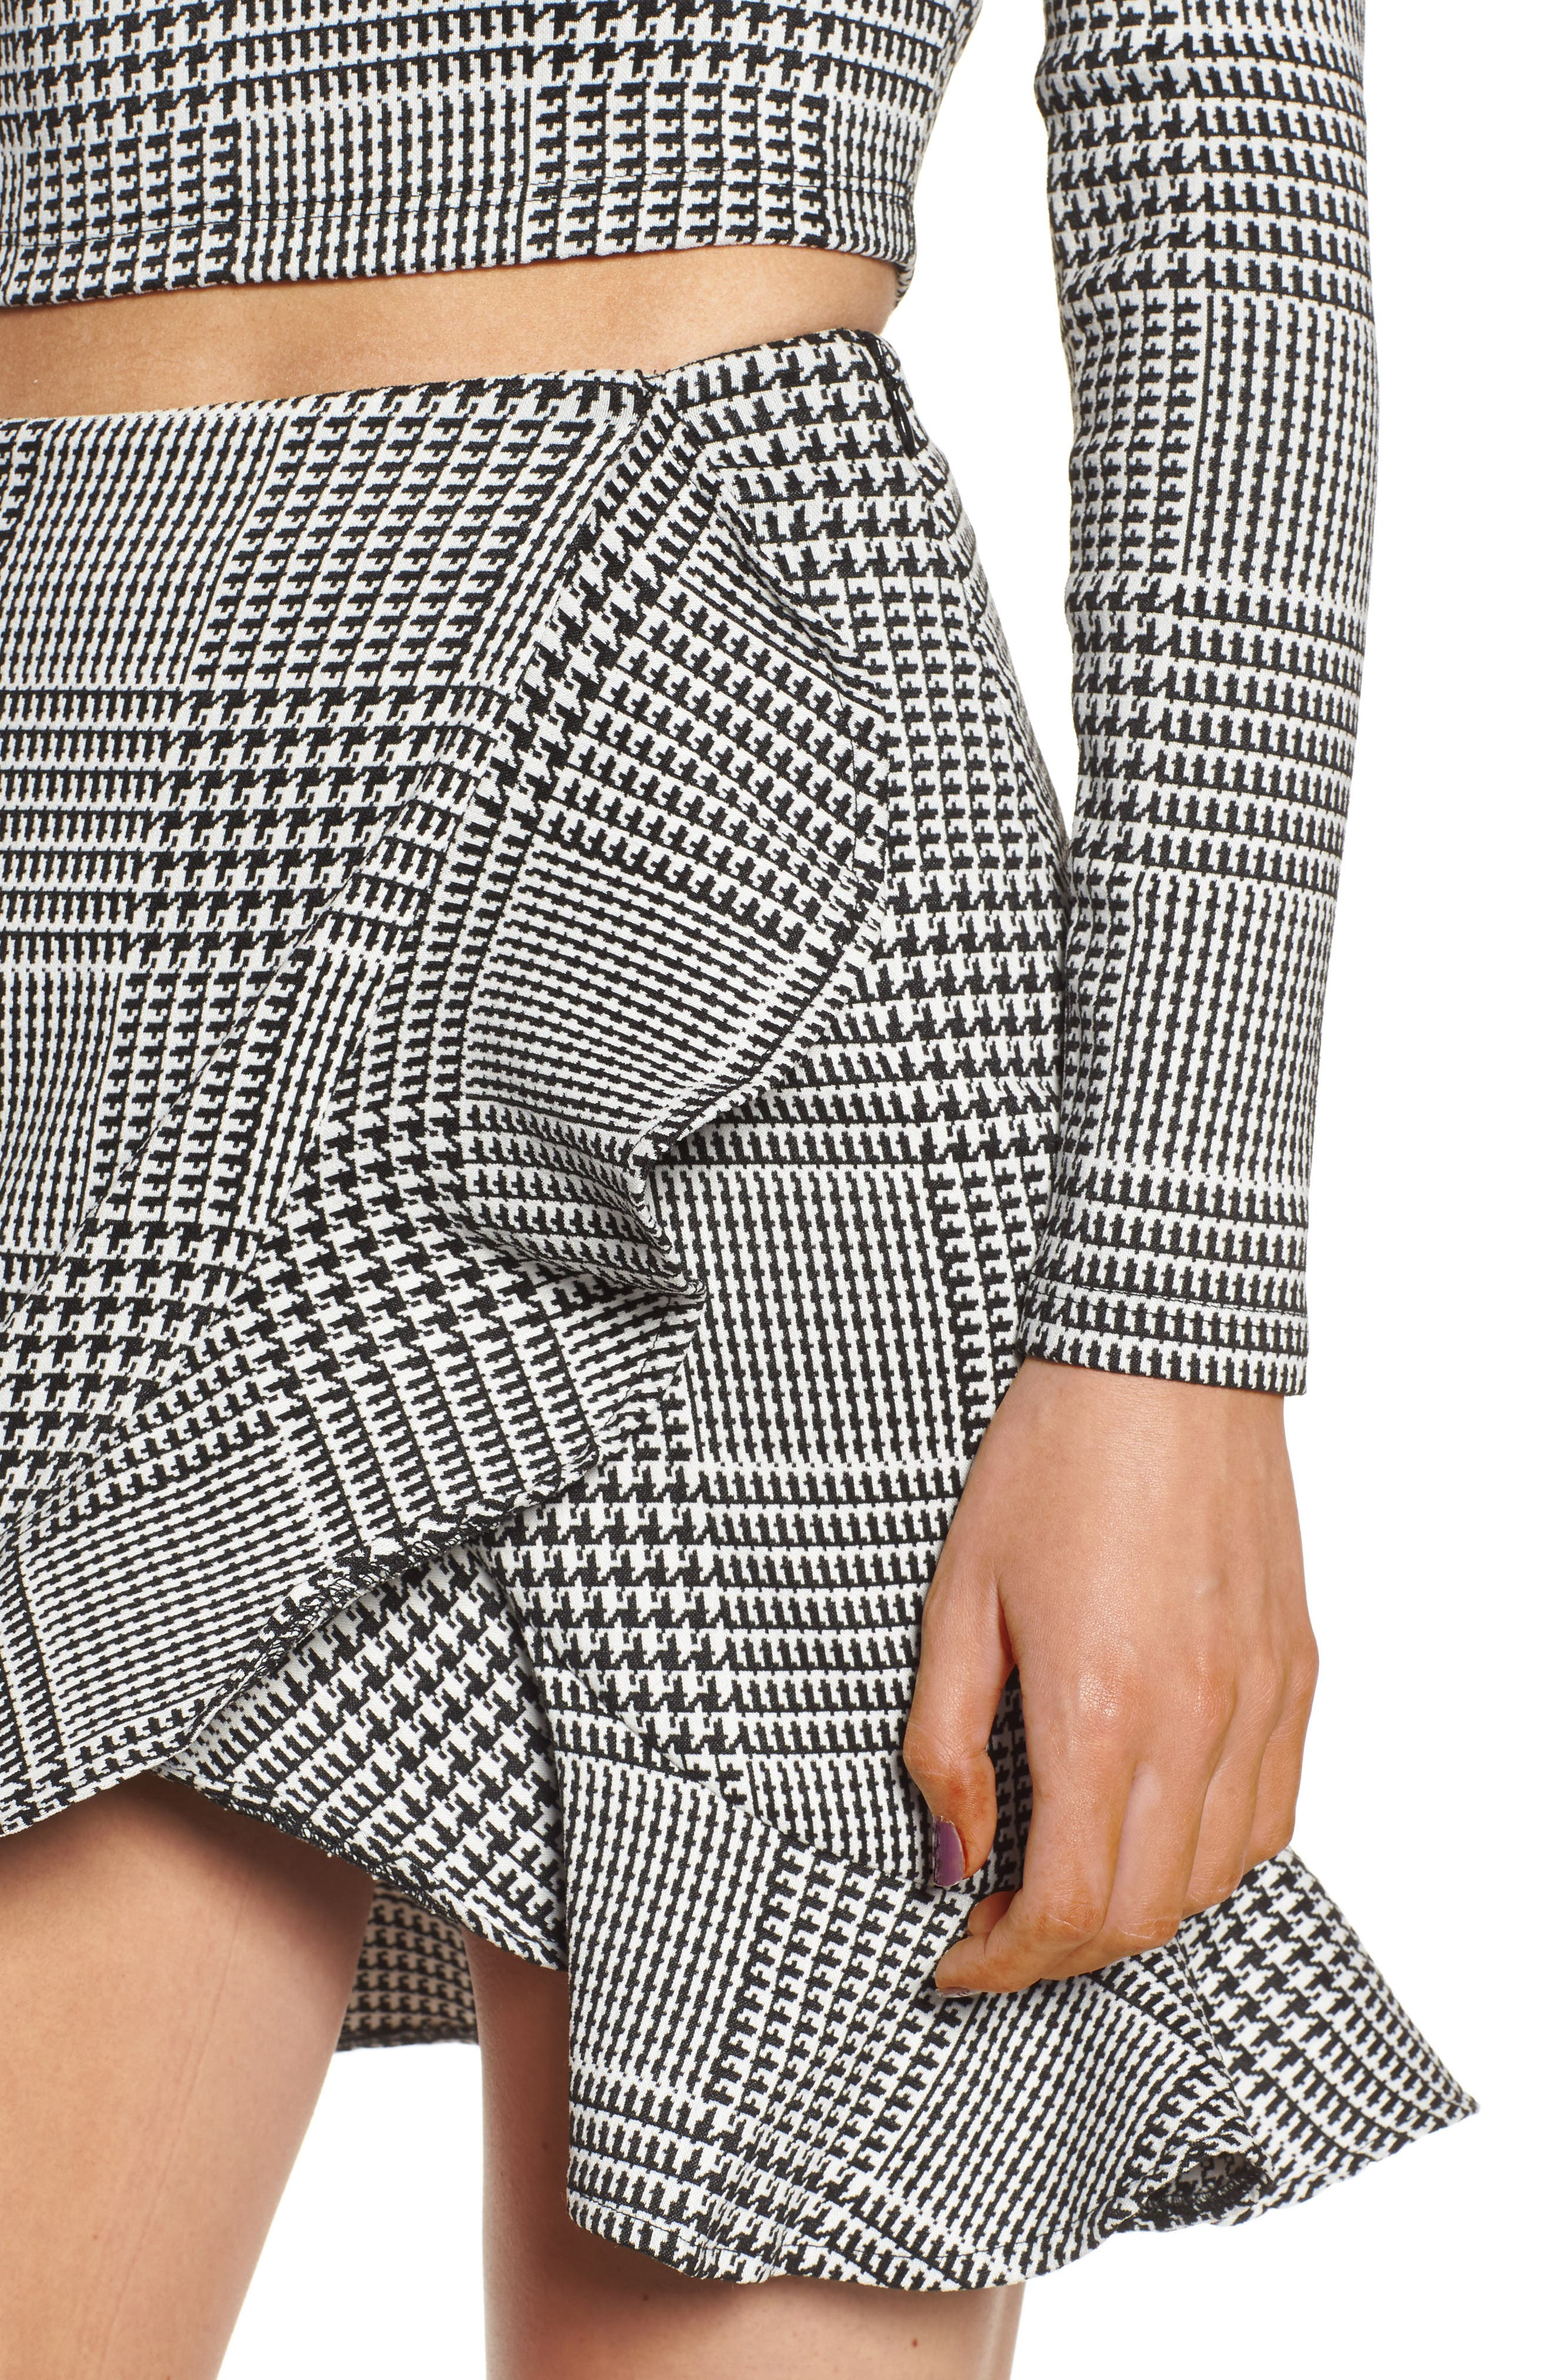 Affection Ruffle Houndstooth Skirt,                             Alternate thumbnail 5, color,                             Houndstooth Plaid